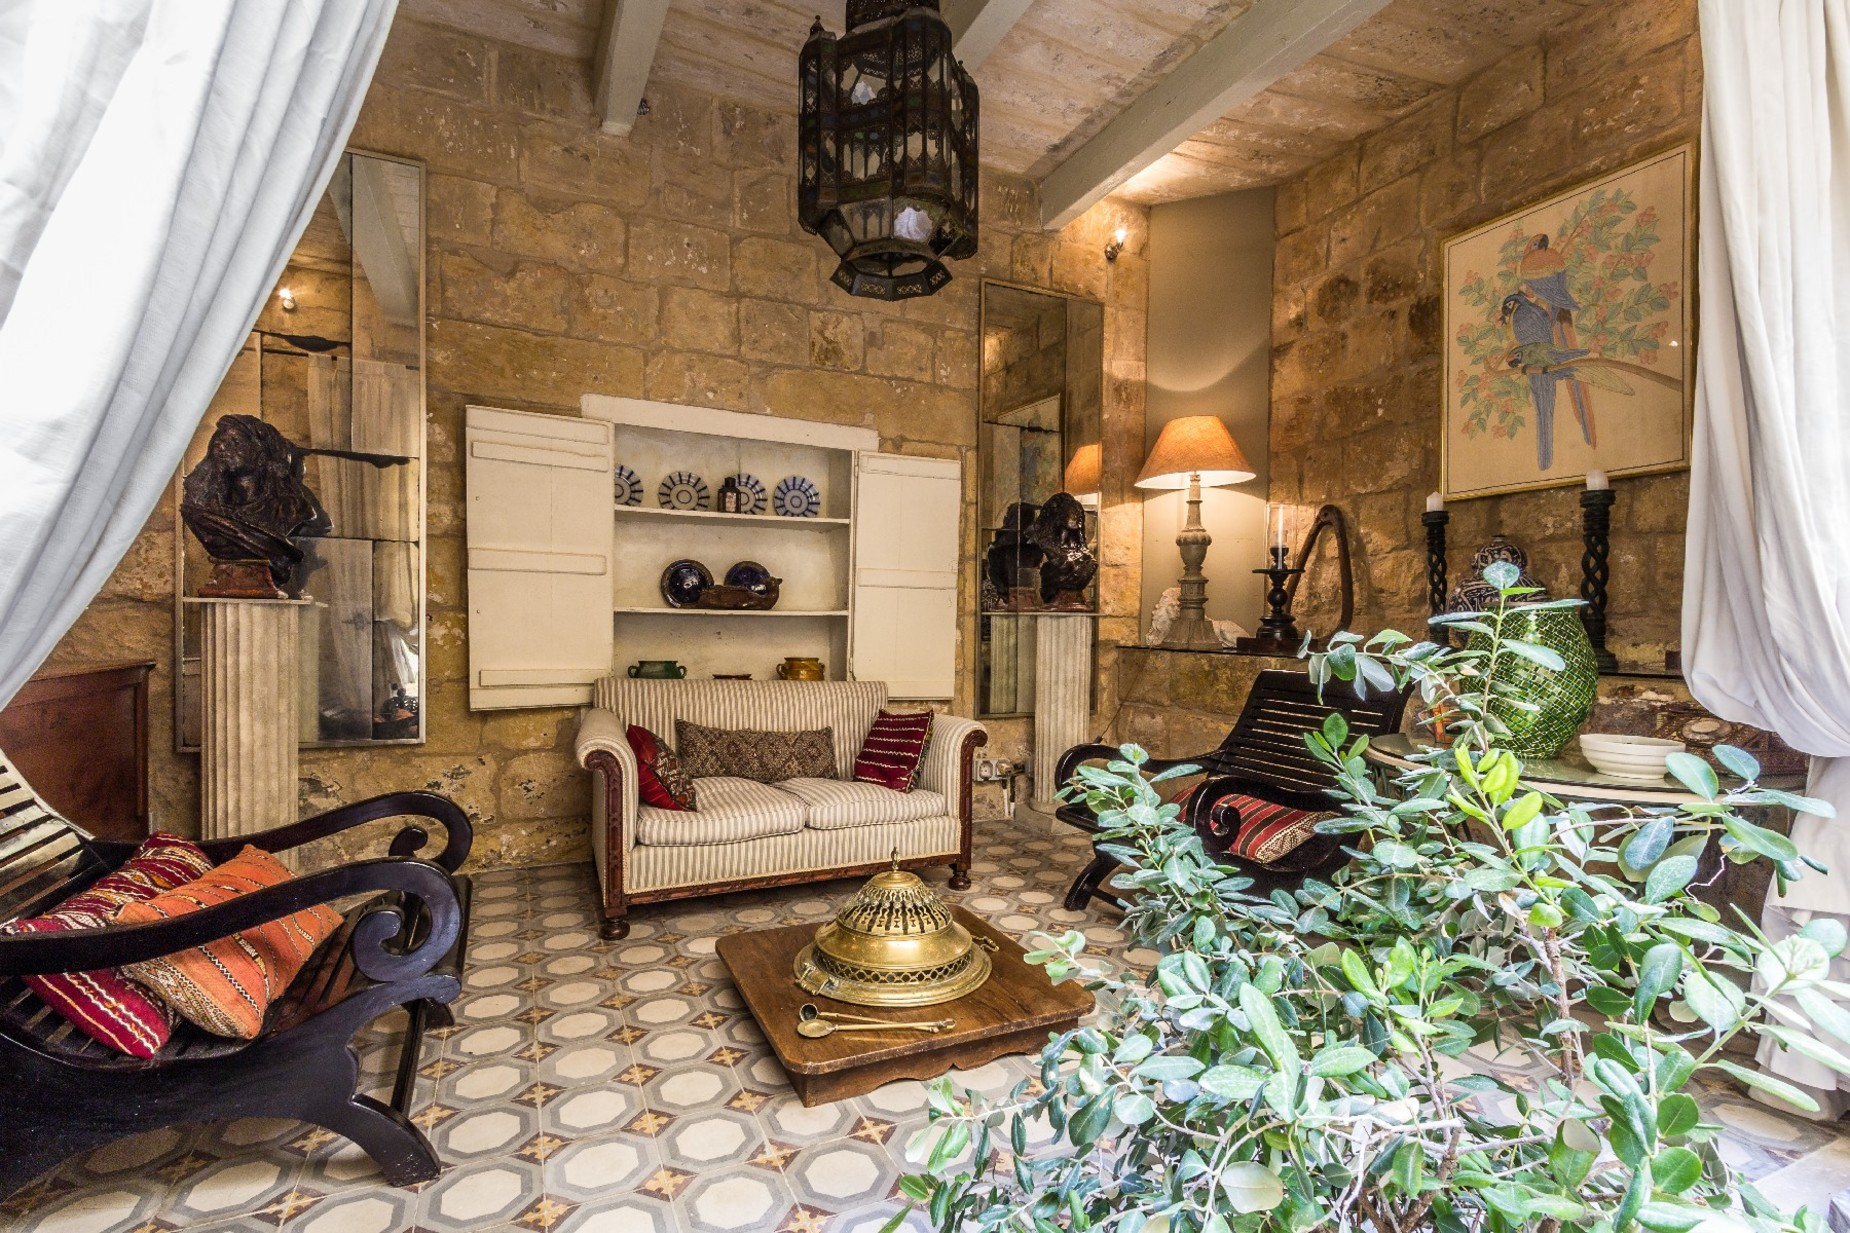 5 bed Town House For Rent in Cospicua, Cospicua - thumb 6